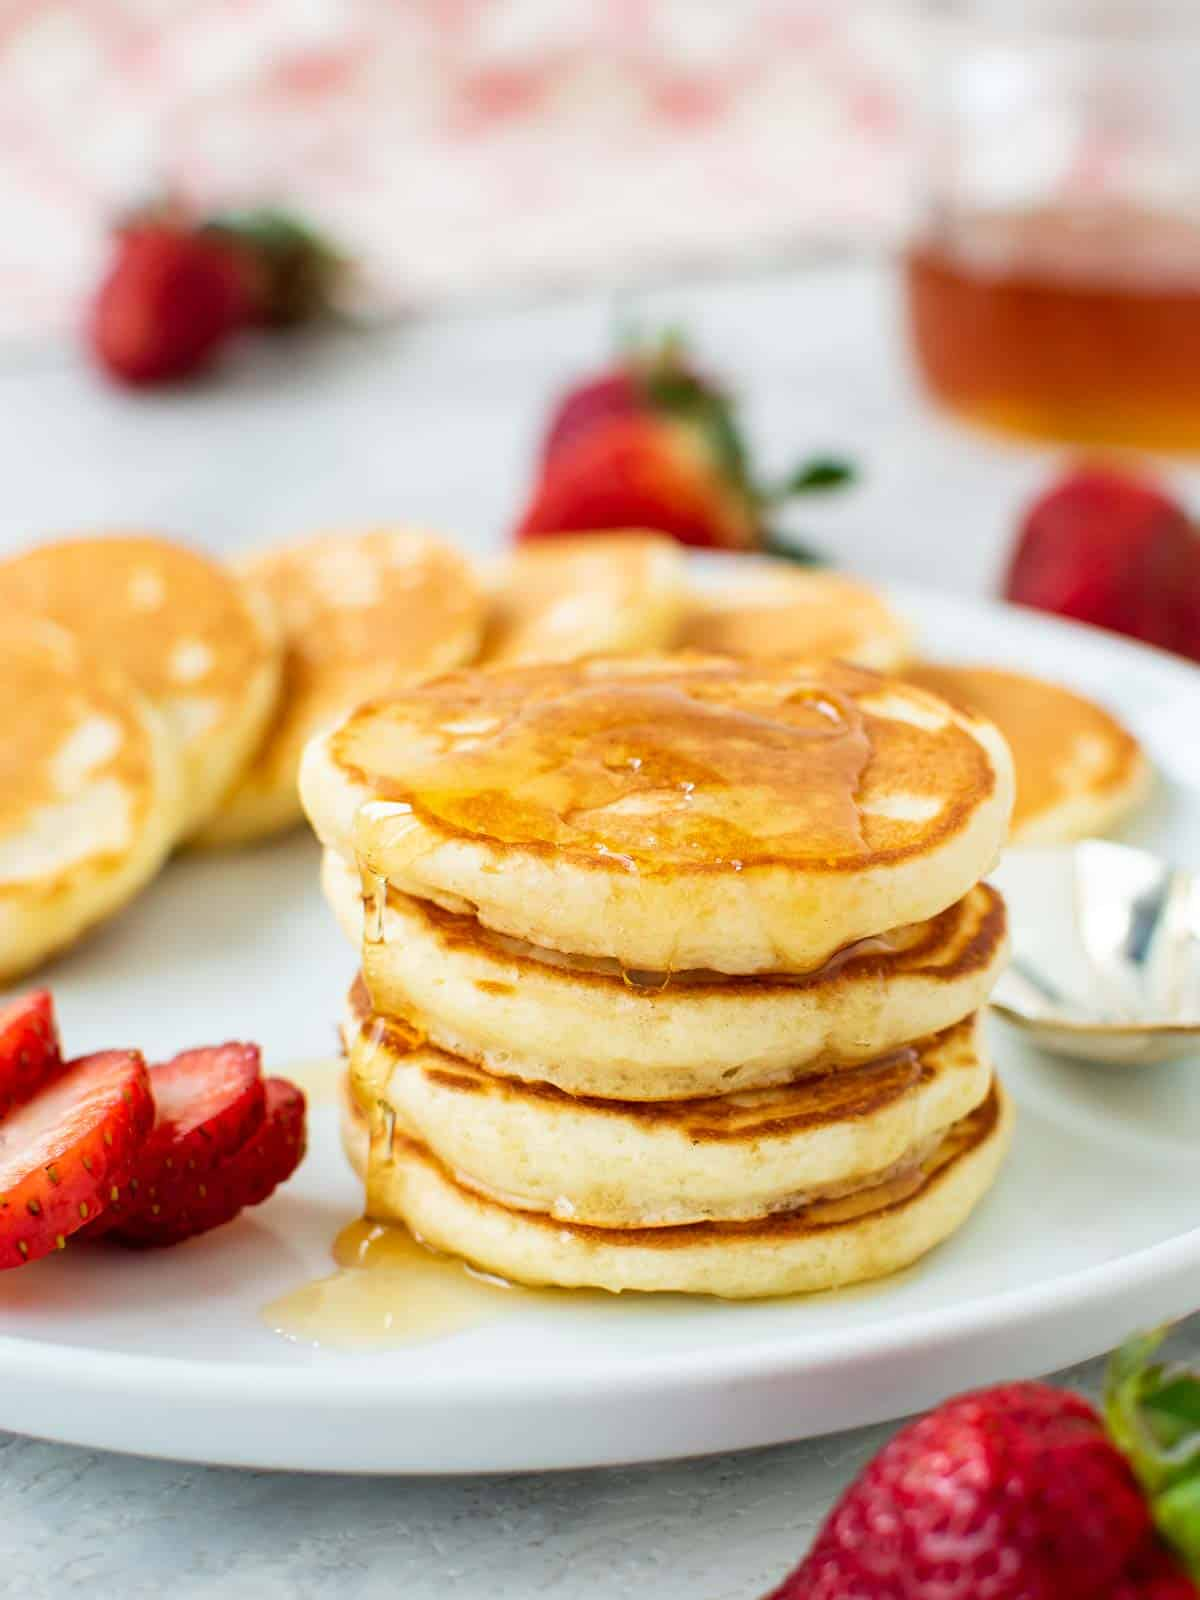 four mini pancakes stacked on a white plate with syrup dripping off and more pancakes and strawberries around.